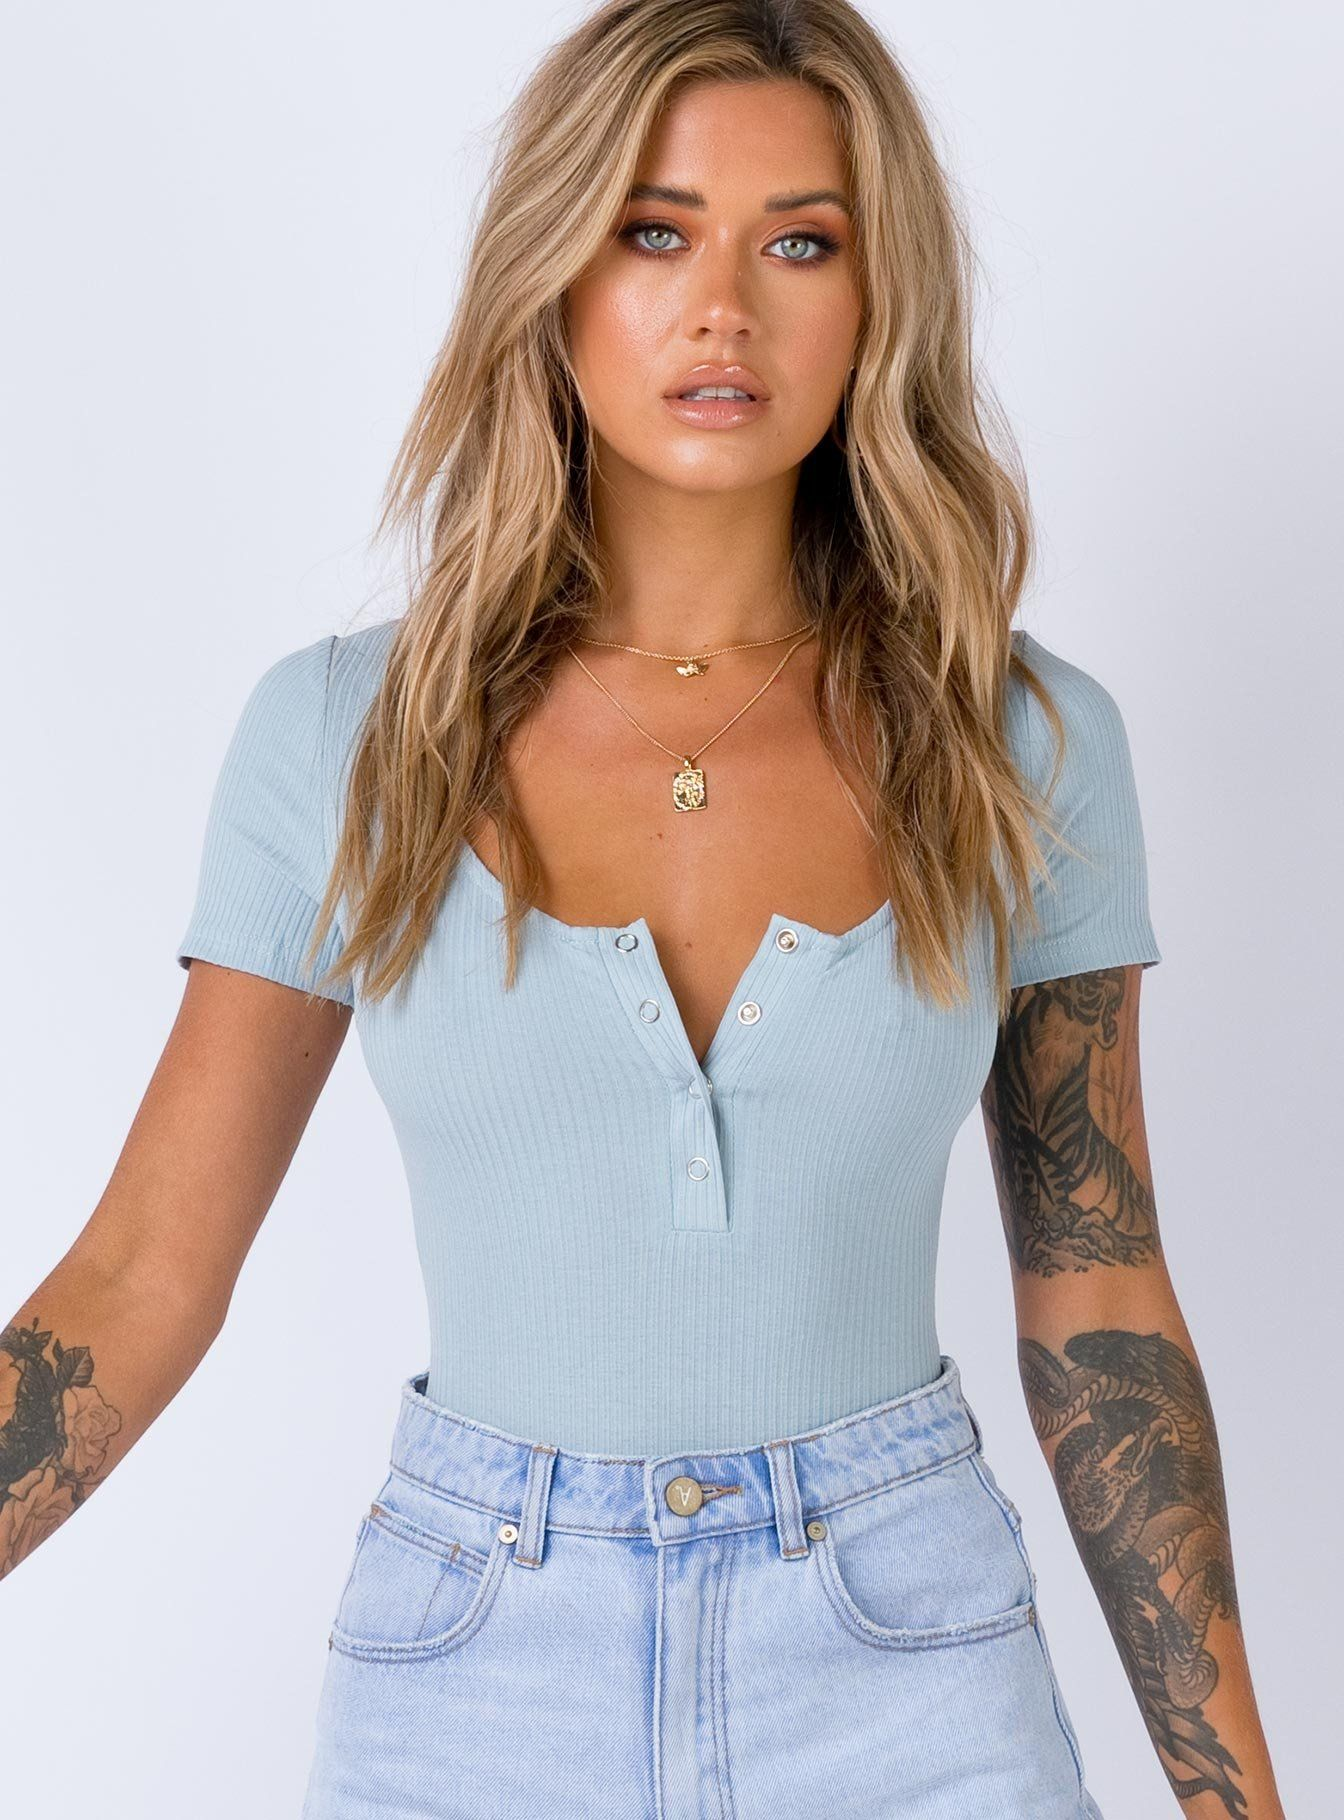 Catch 22 Bodysuit Dusty Blue US 0 / Dusty Blue